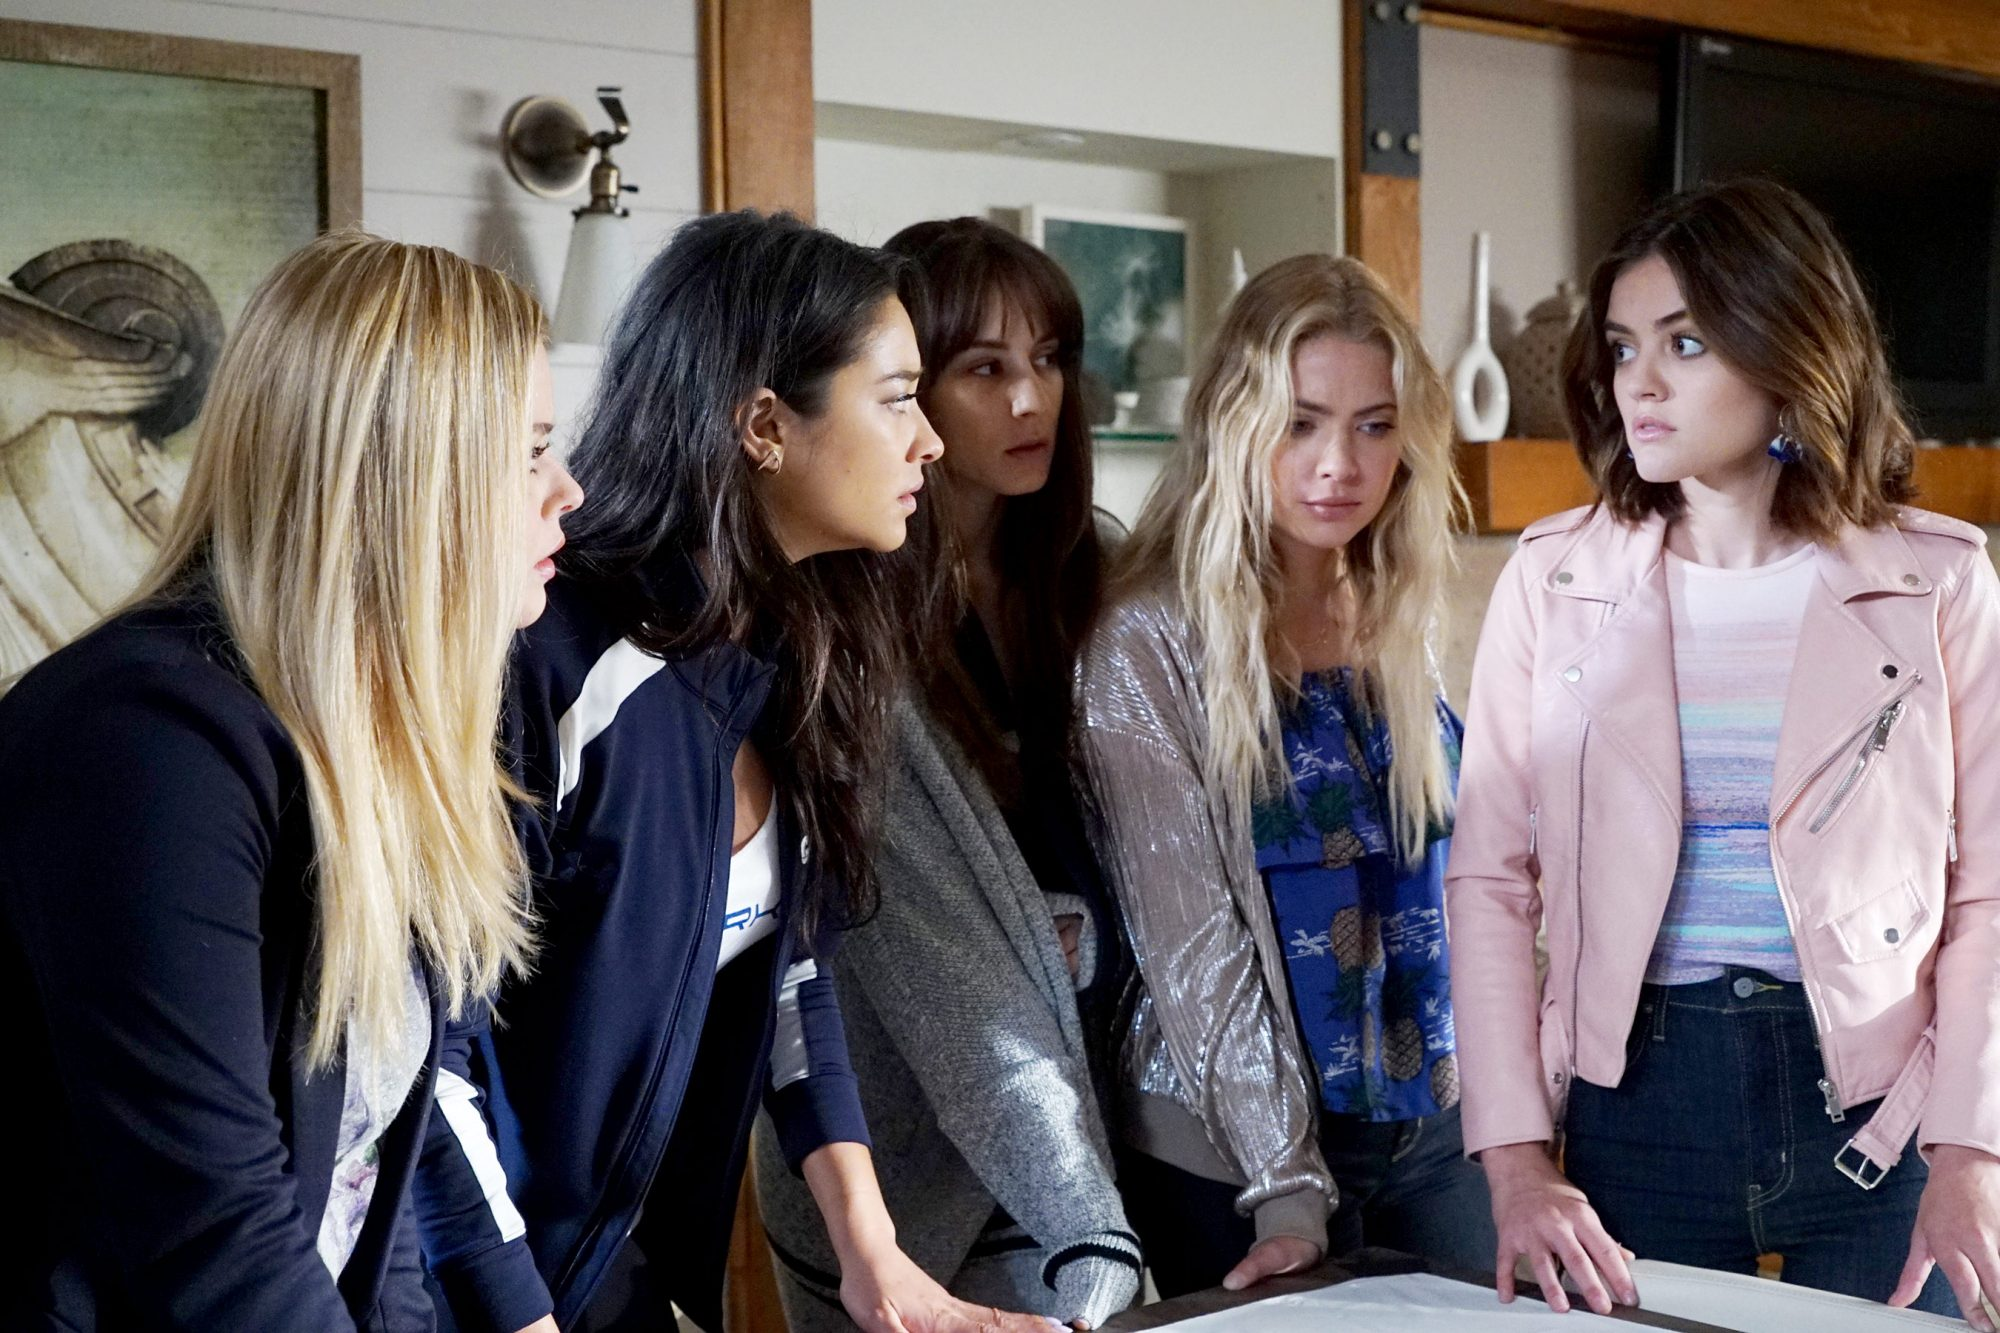 SASHA PIETERSE, SHAY MITCHELL, TROIAN BELLISARIO, ASHLEY BENSON, LUCY HALE